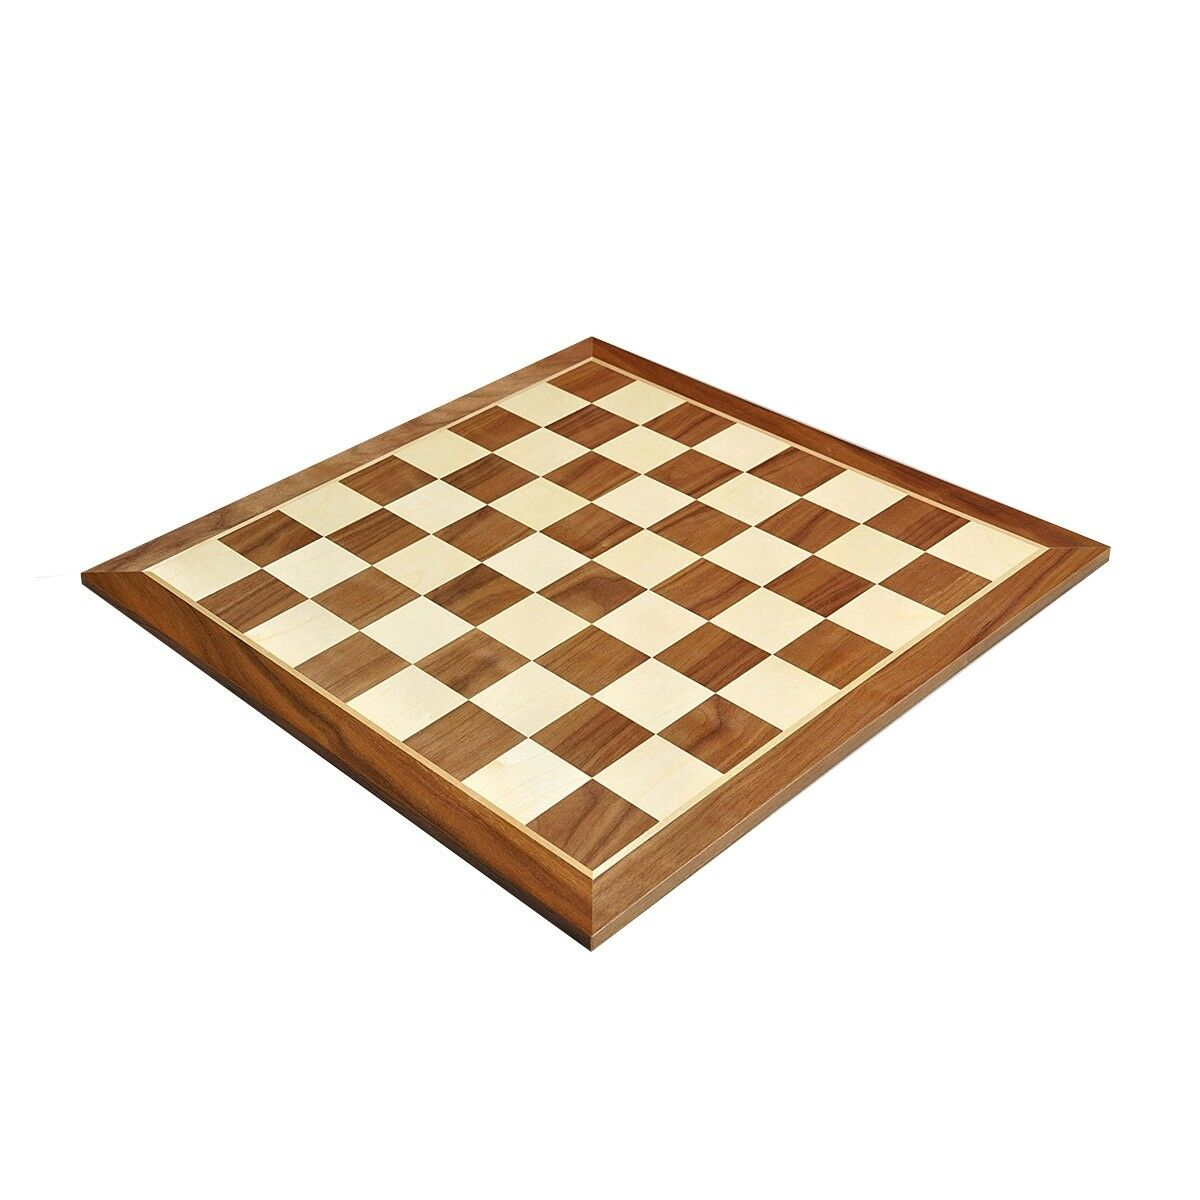 Walnut & Maple boisen Chess Board -  2.25   Commandez maintenant